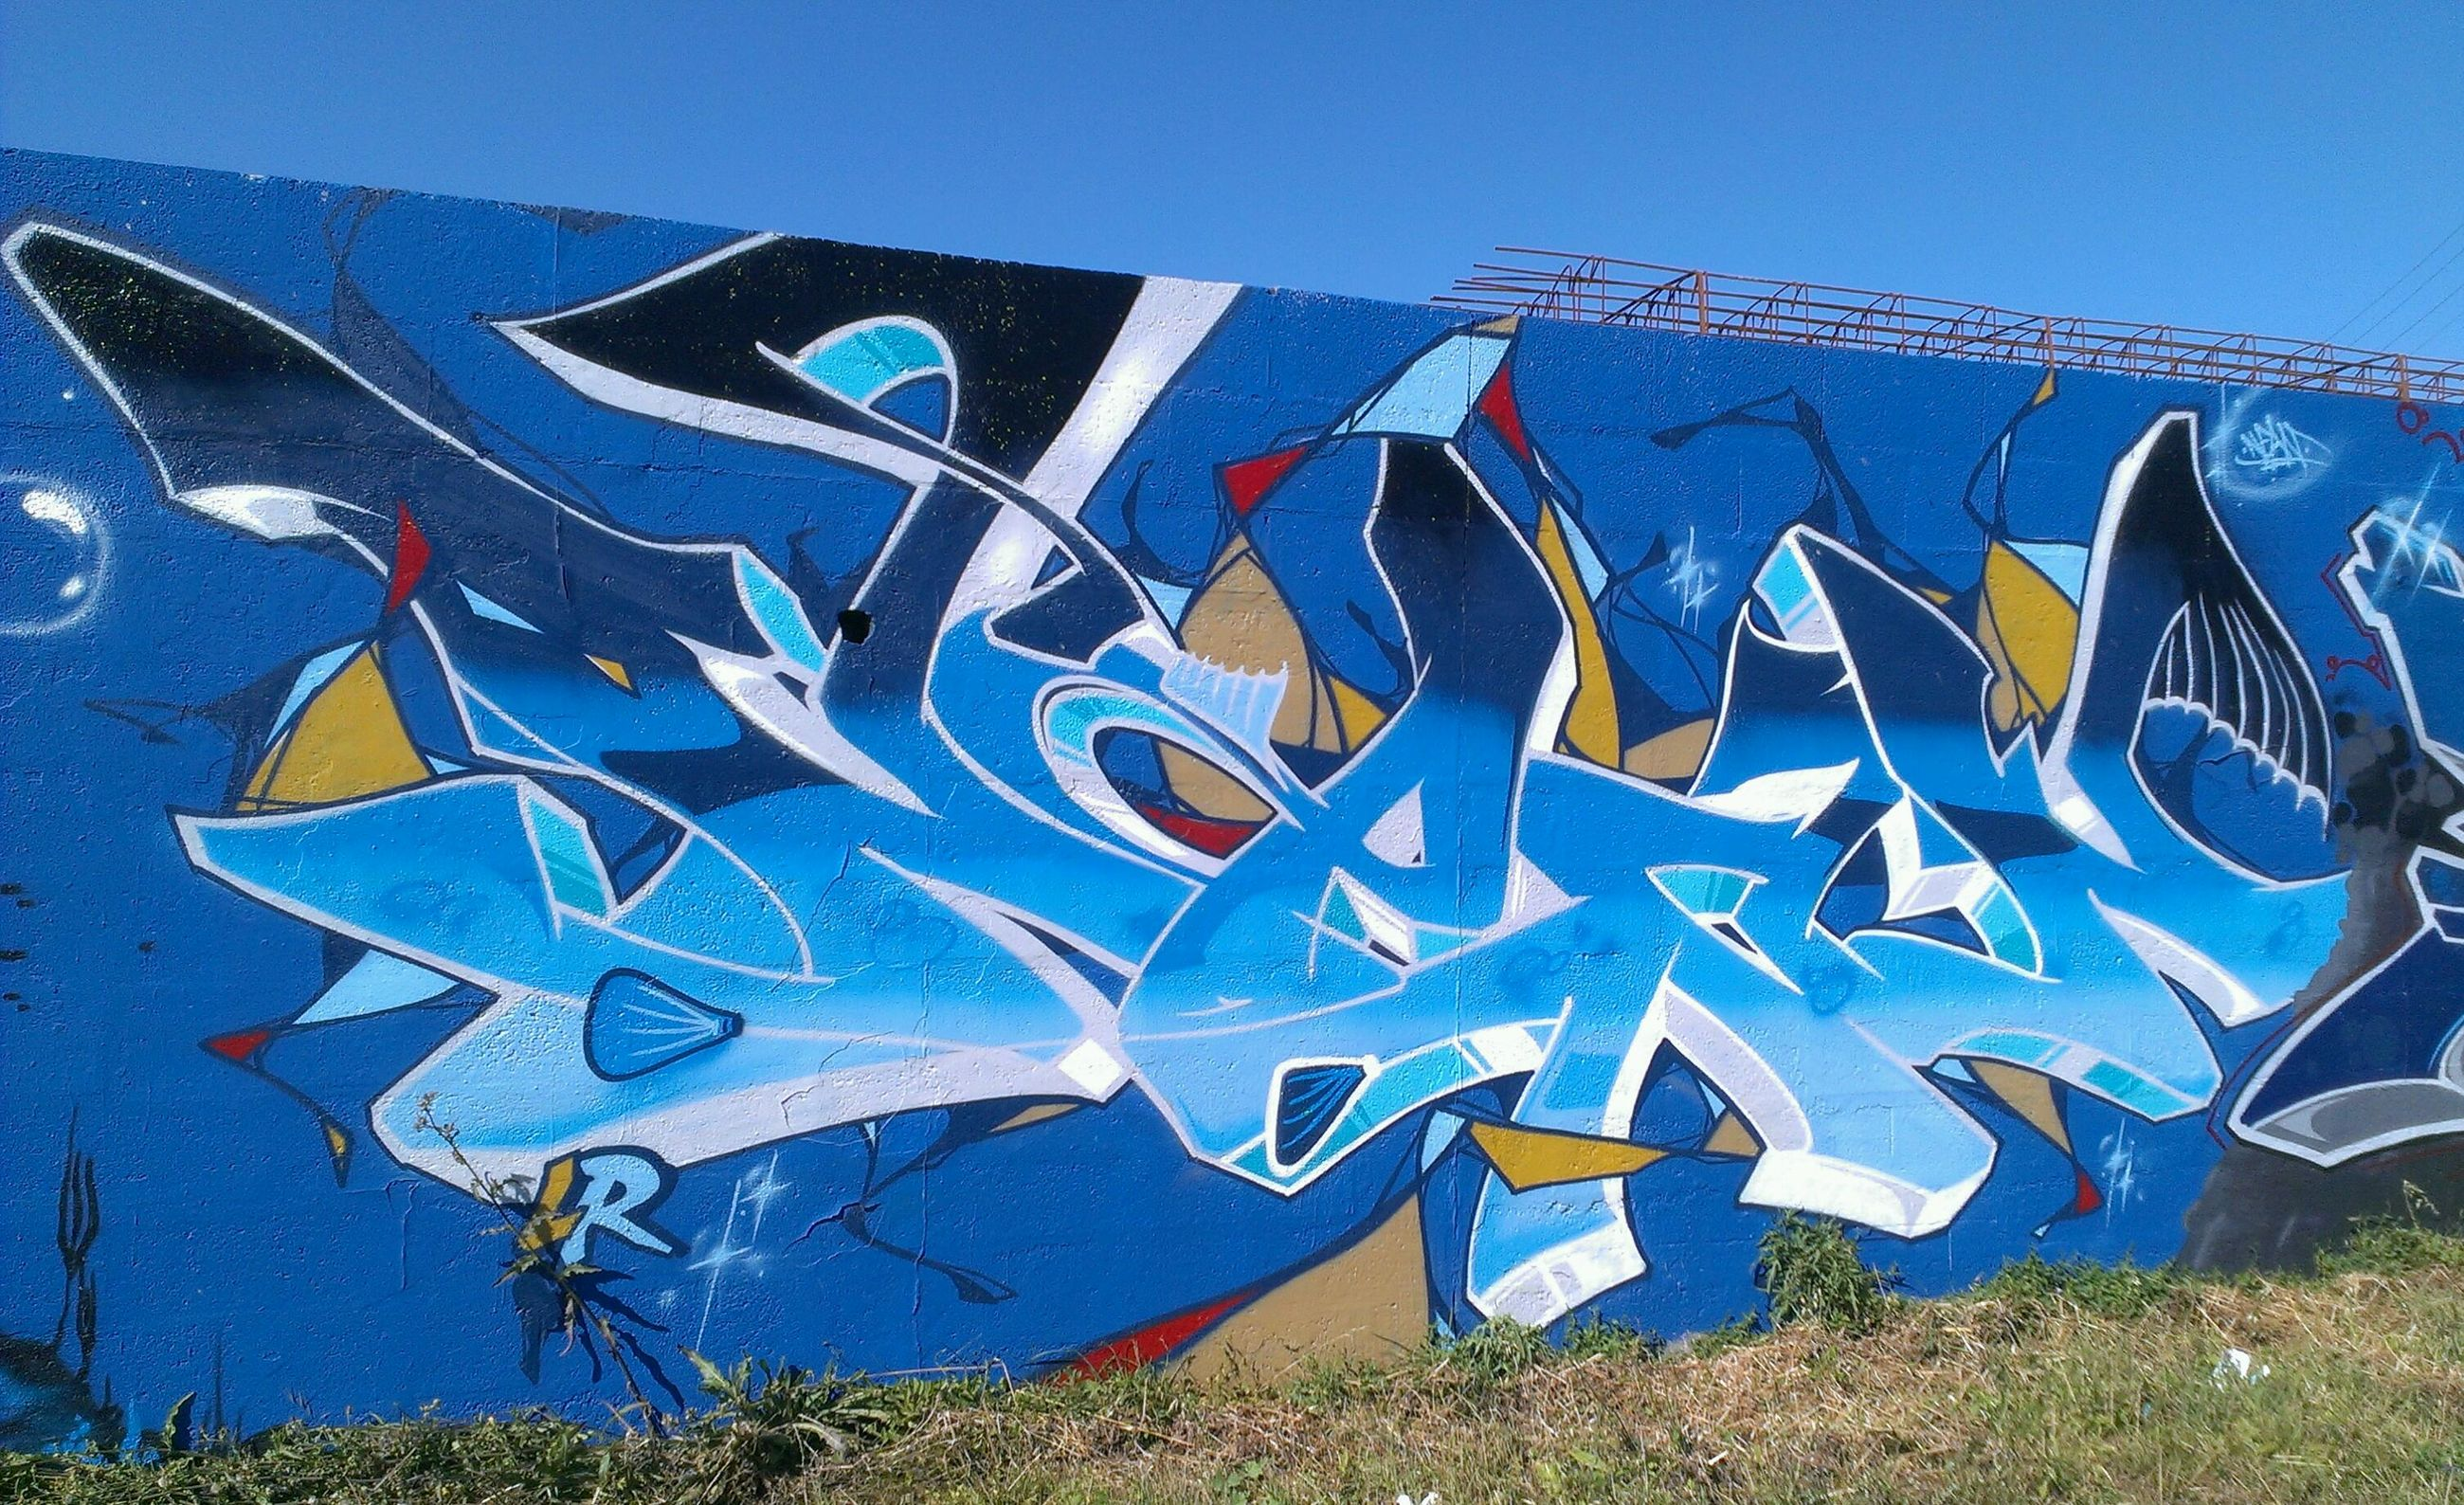 blue, graffiti, creativity, art, multi colored, western script, text, art and craft, clear sky, built structure, low angle view, communication, architecture, building exterior, day, wall - building feature, outdoors, no people, street art, sunlight